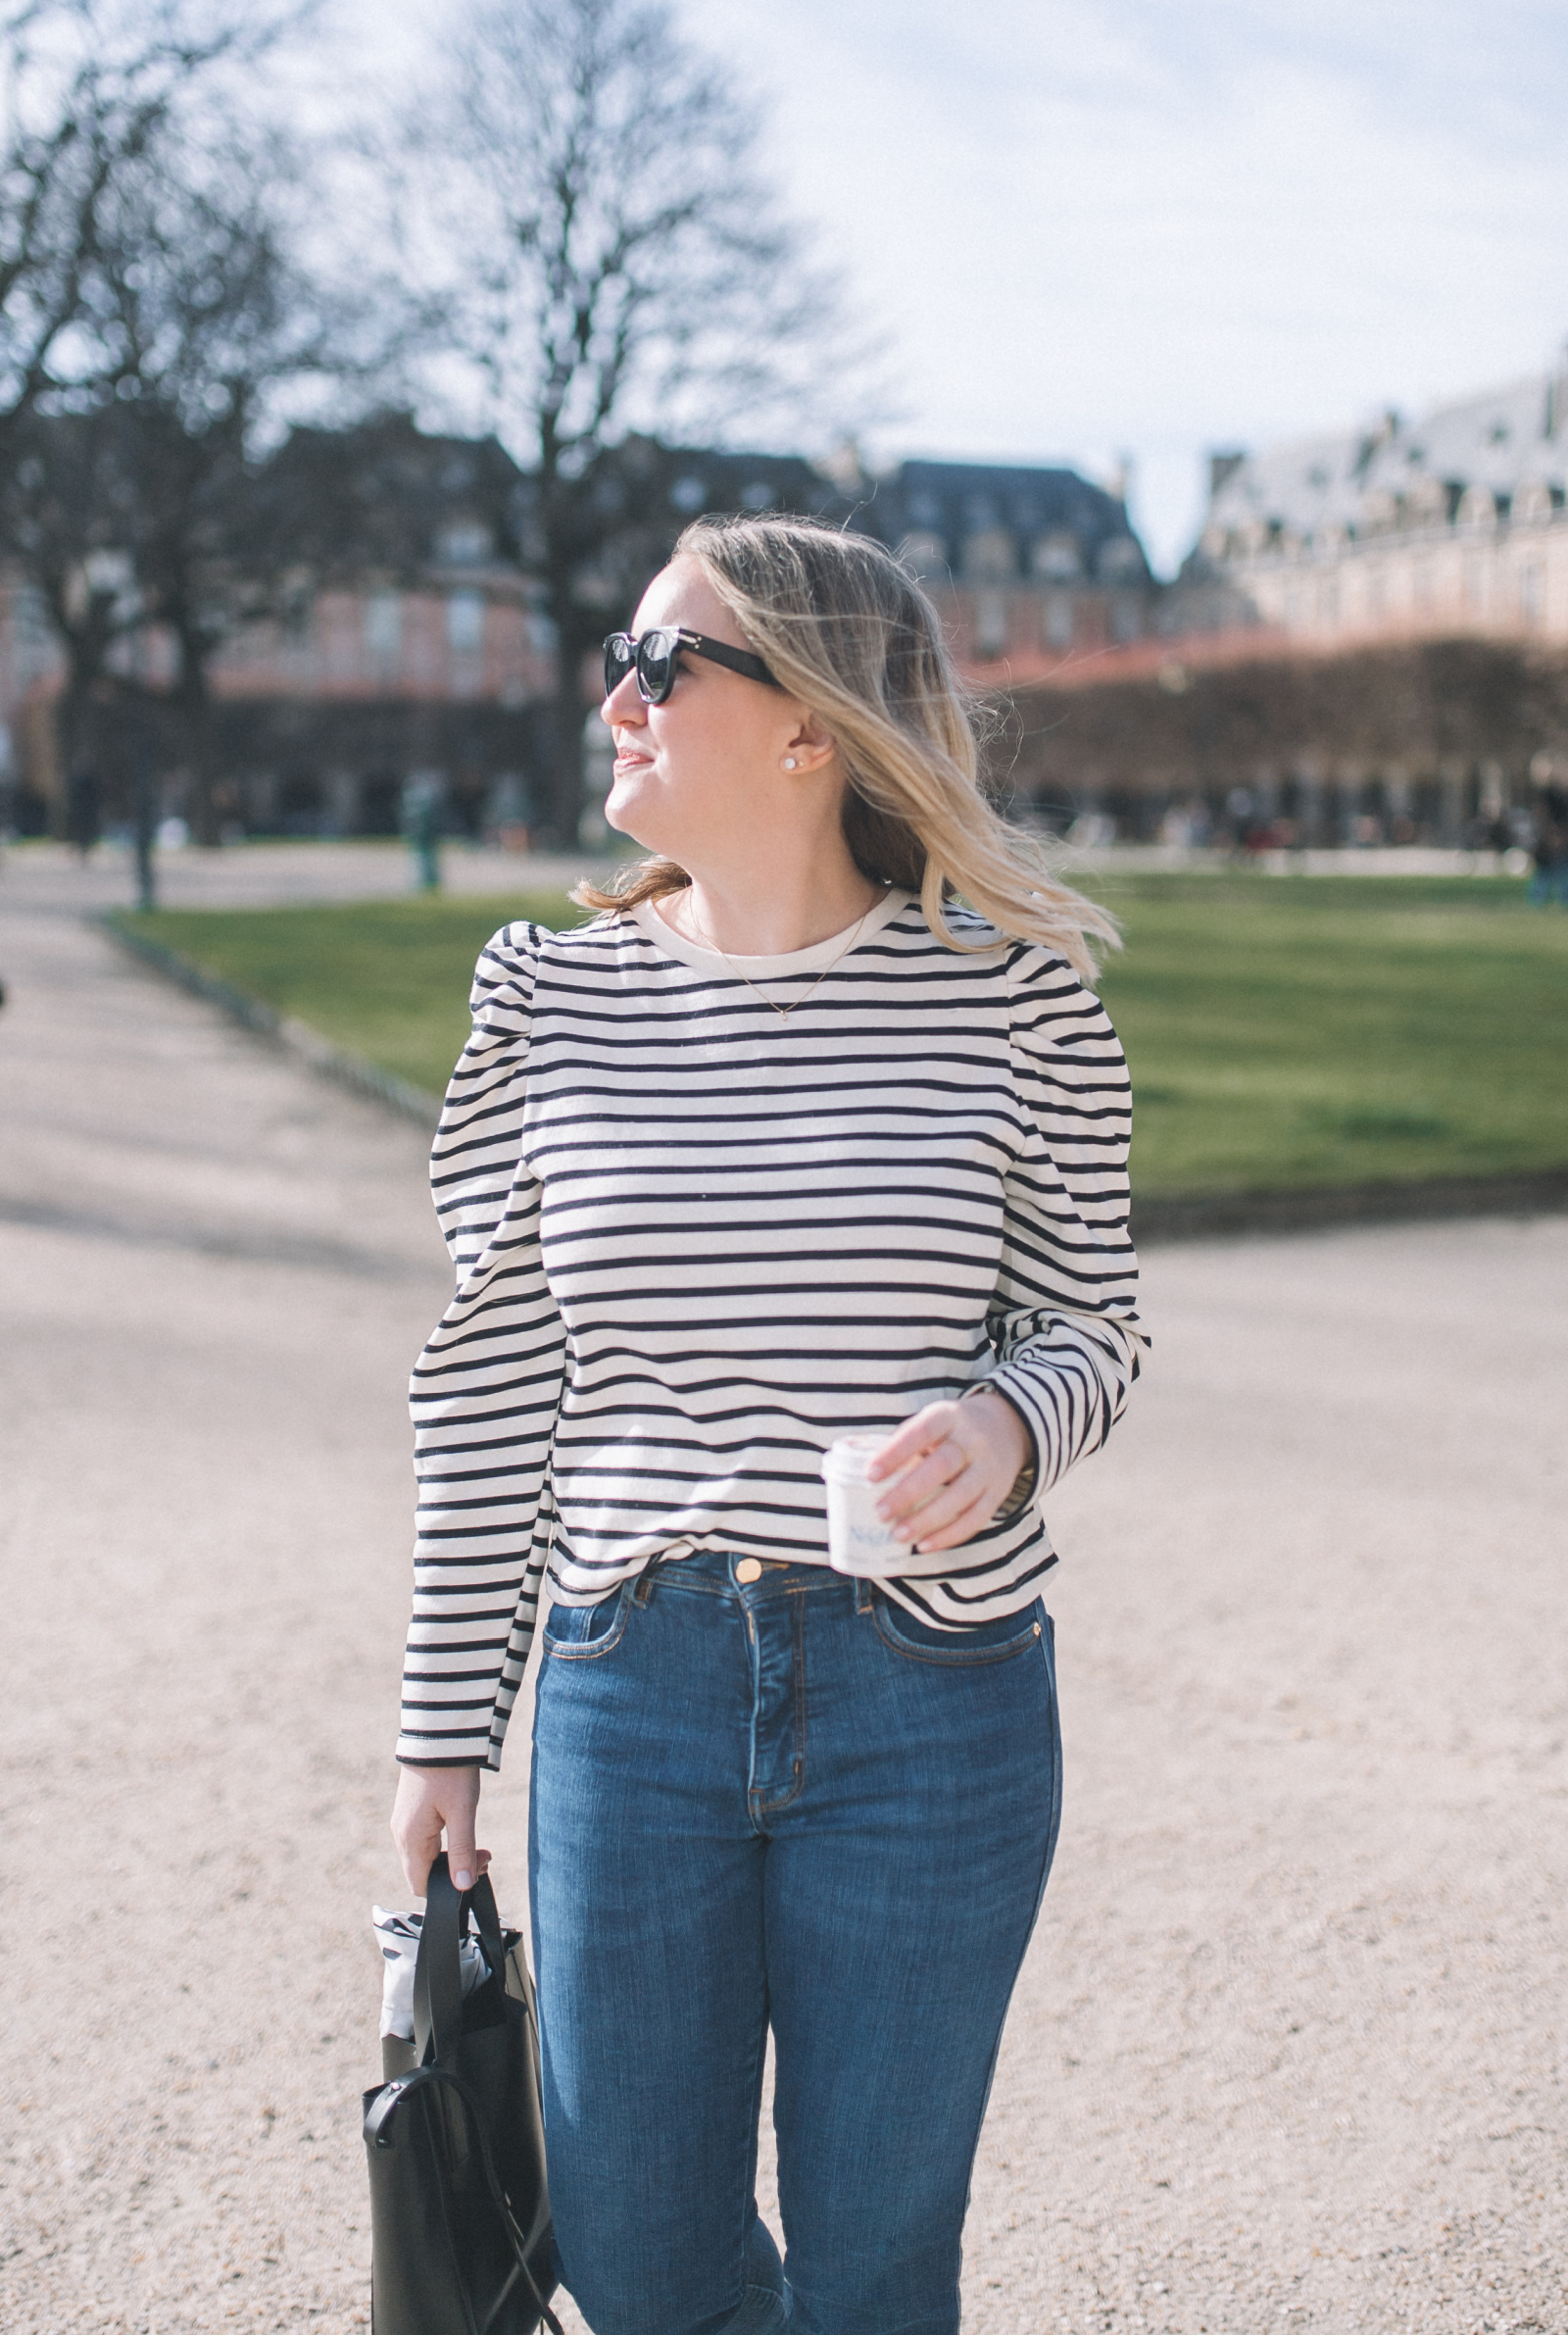 How to Dress for Paris in the Summer